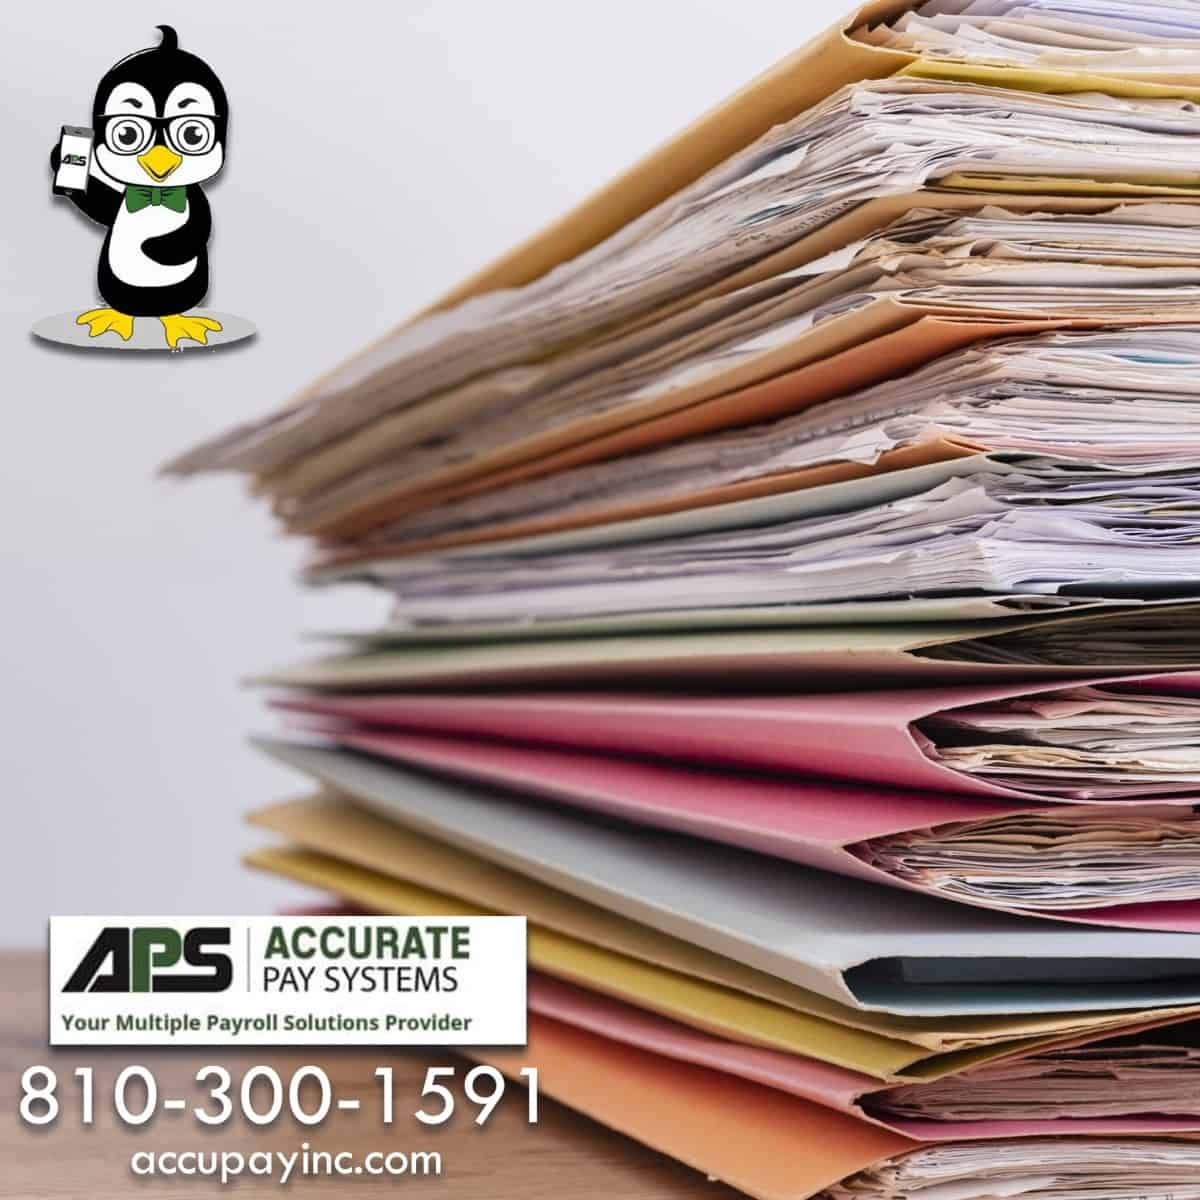 Employee file management from Accurate Pay Systems